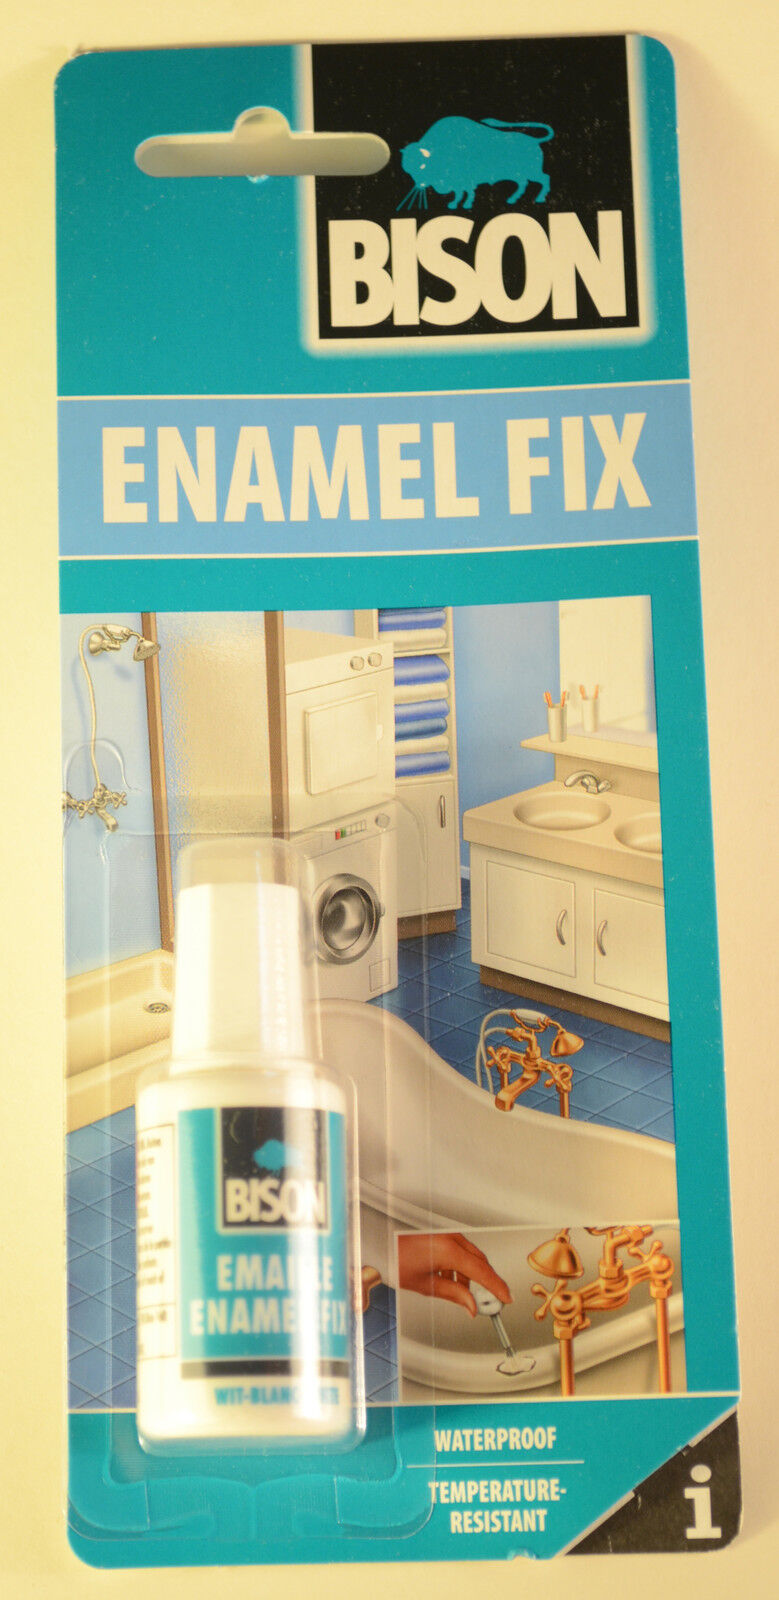 ENAMEL CHIP REPAIR KIT TOUCH UP PAINT FIXCHIPS ON BATH SINK Water ...